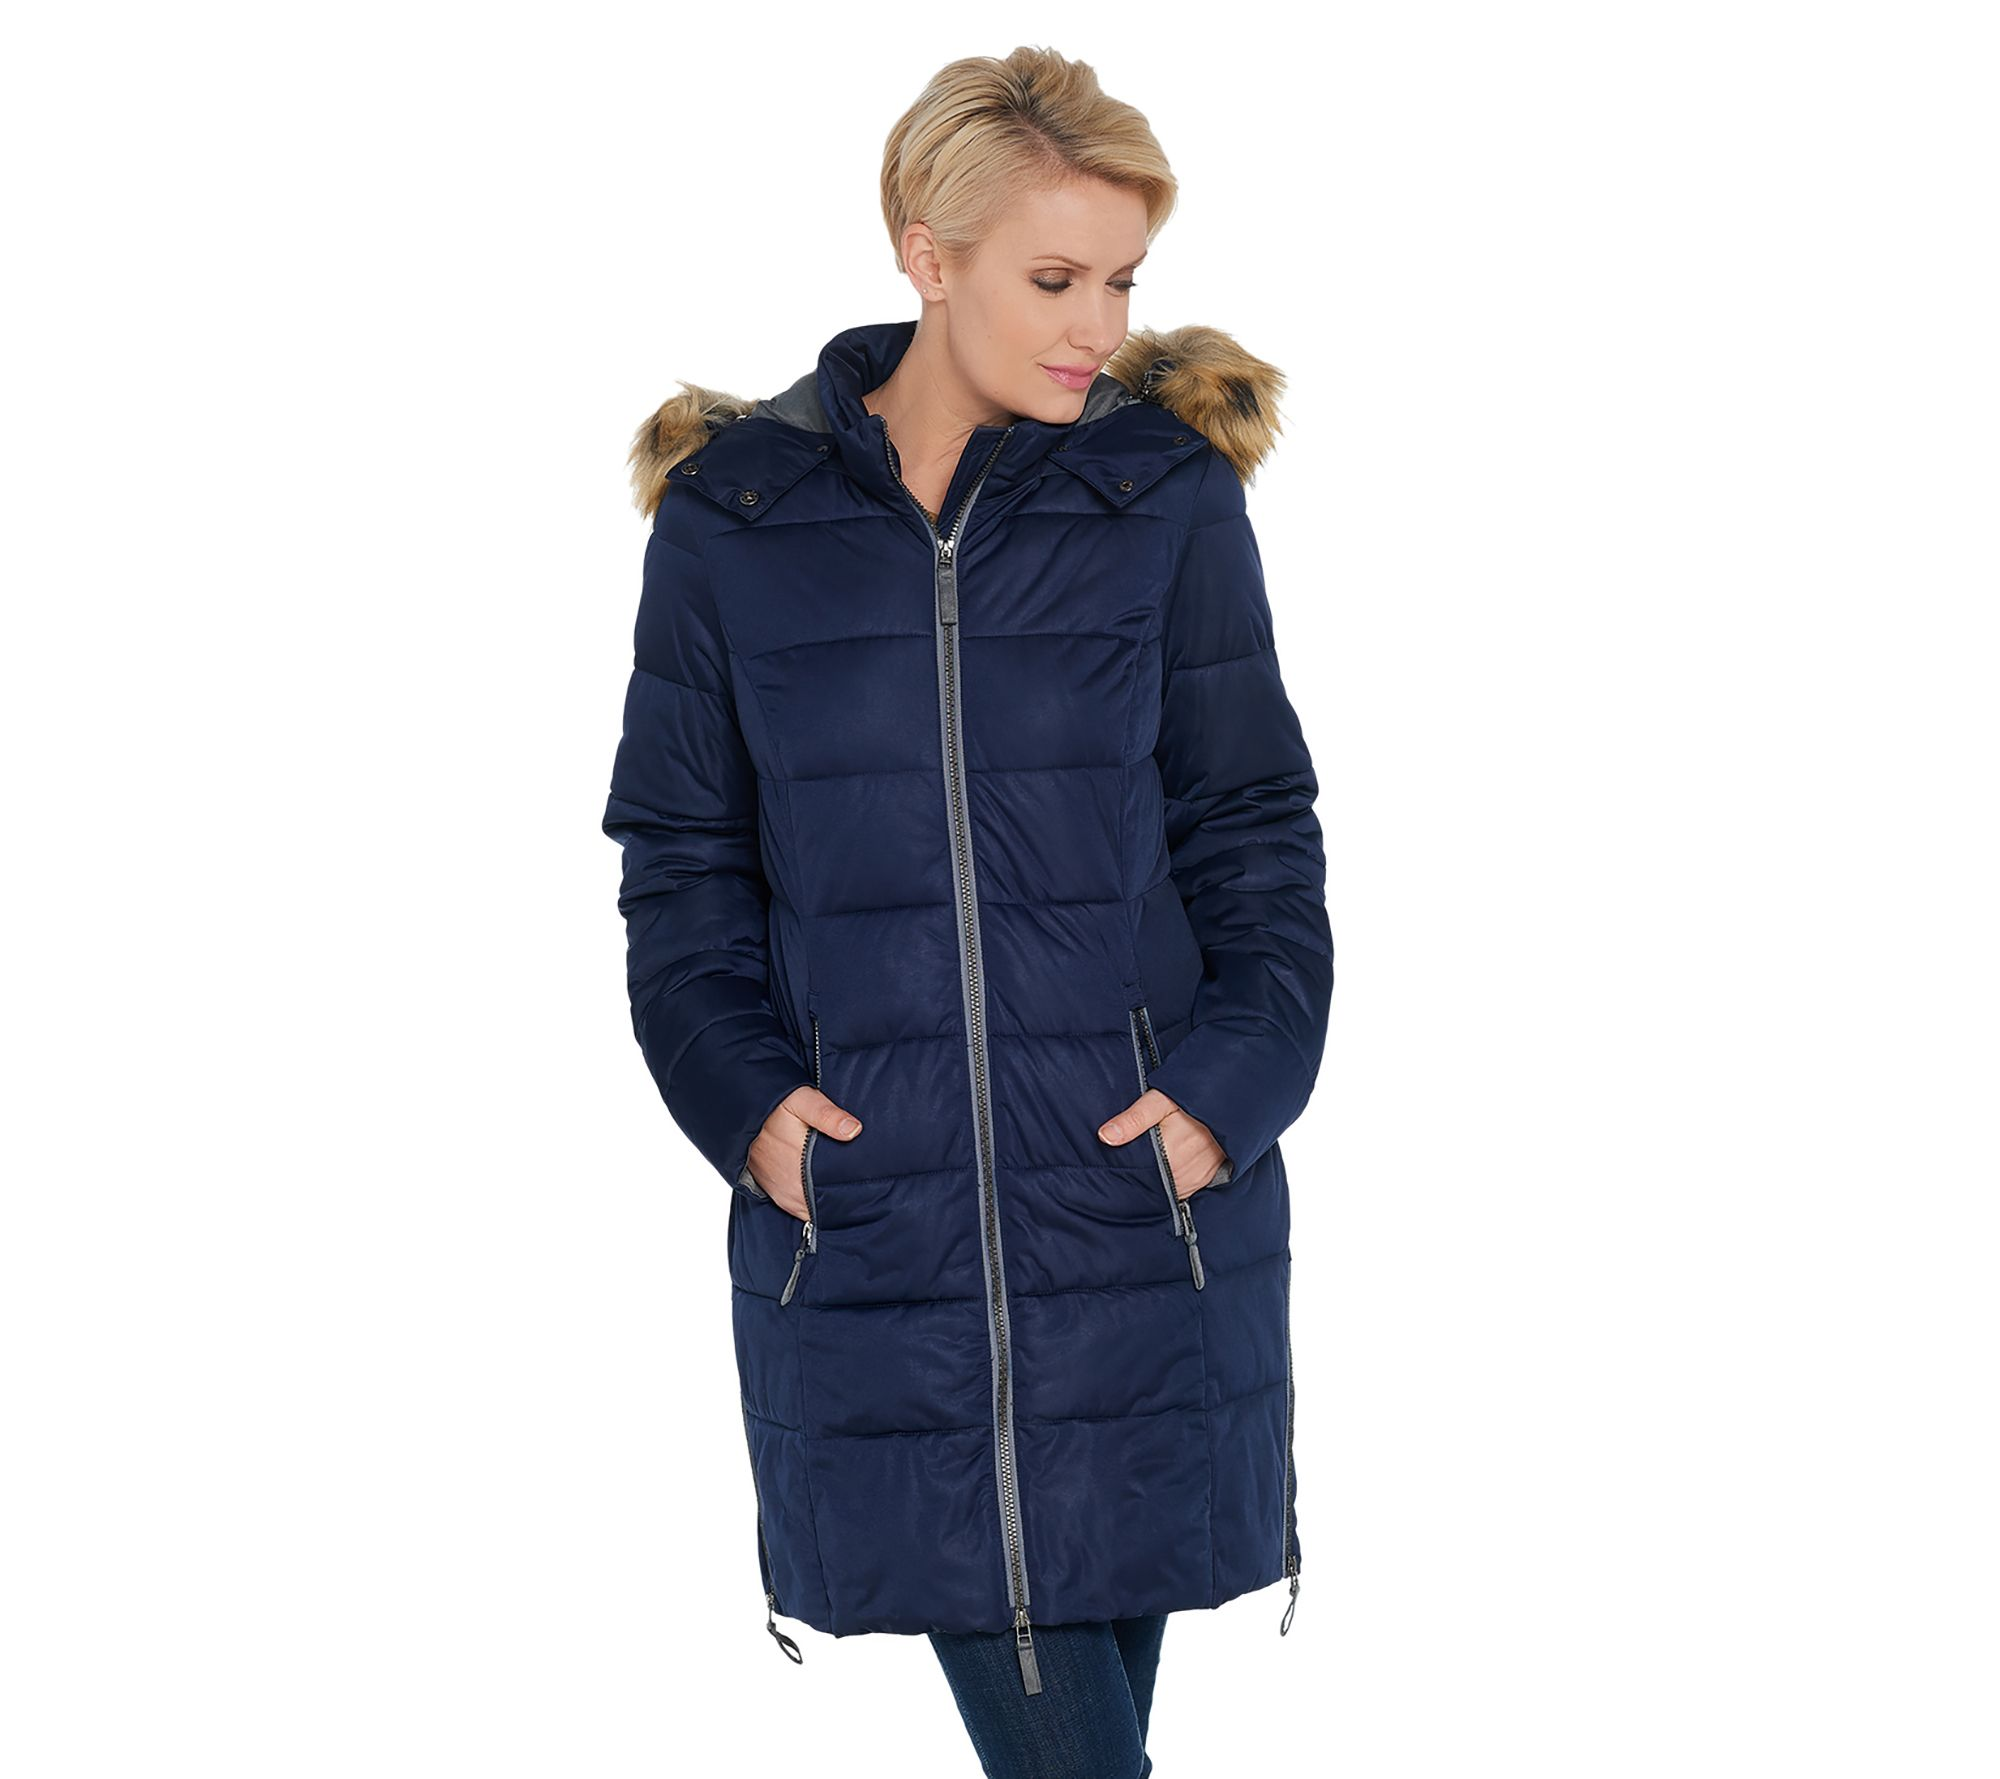 f8f638122 Nuage Women's Stretch Zip Front Puffer Jacket - Page 1 — QVC.com